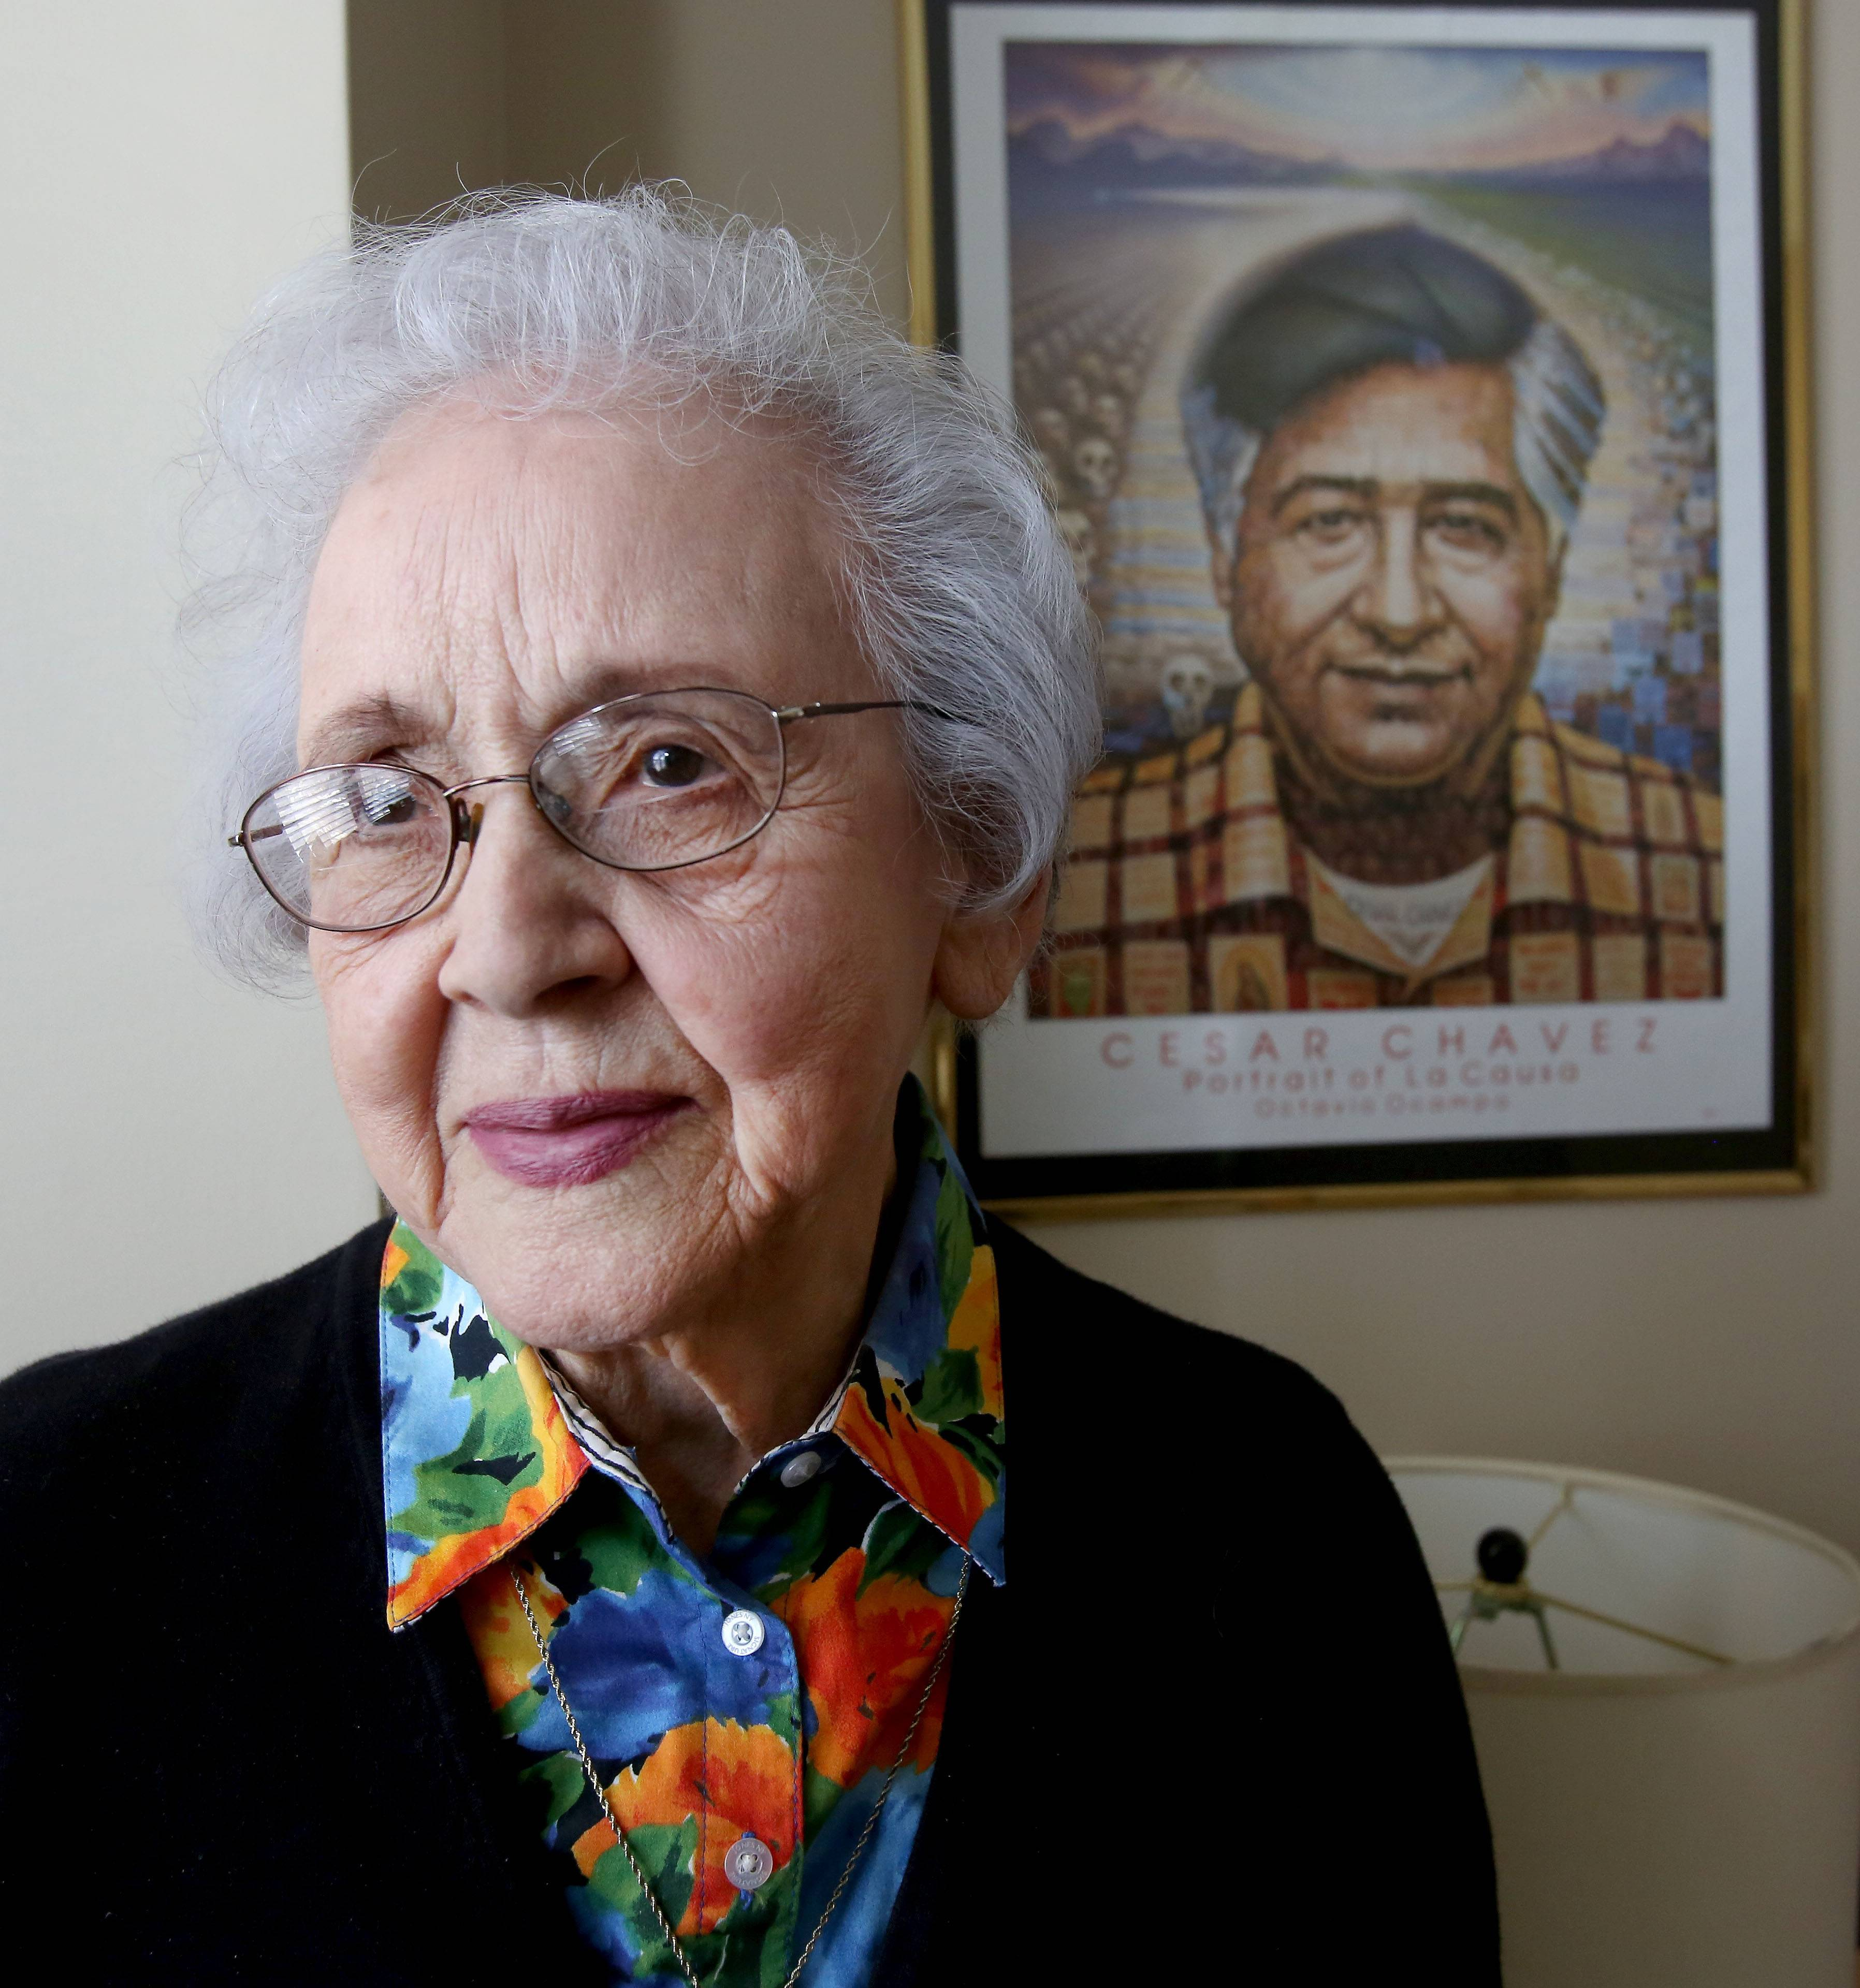 Olgha Sandman, a friend and associate of migrant worker, labor leader and civil rights advocate Cesar Chavez, has a portrait of him hanging in her Downers Grove apartment.